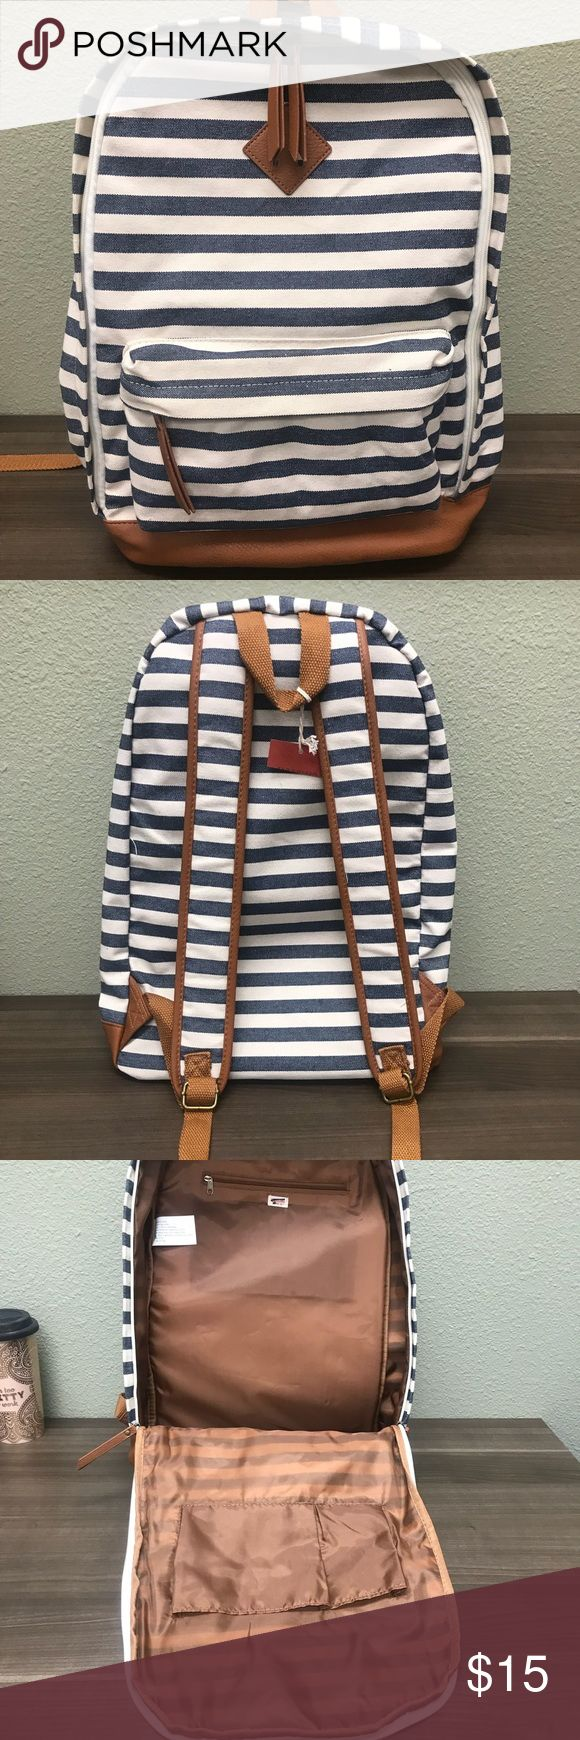 NWT Merona Striped Backpack Denim Blue and White New Merona Denim Blue and White Striped Backpack. See pics for measurements. Perfect for school, shopping trips or a day out exploring 😃. Note:  Half of the Merona tag has been cut off to prevent returns. Merona Bags Backpacks